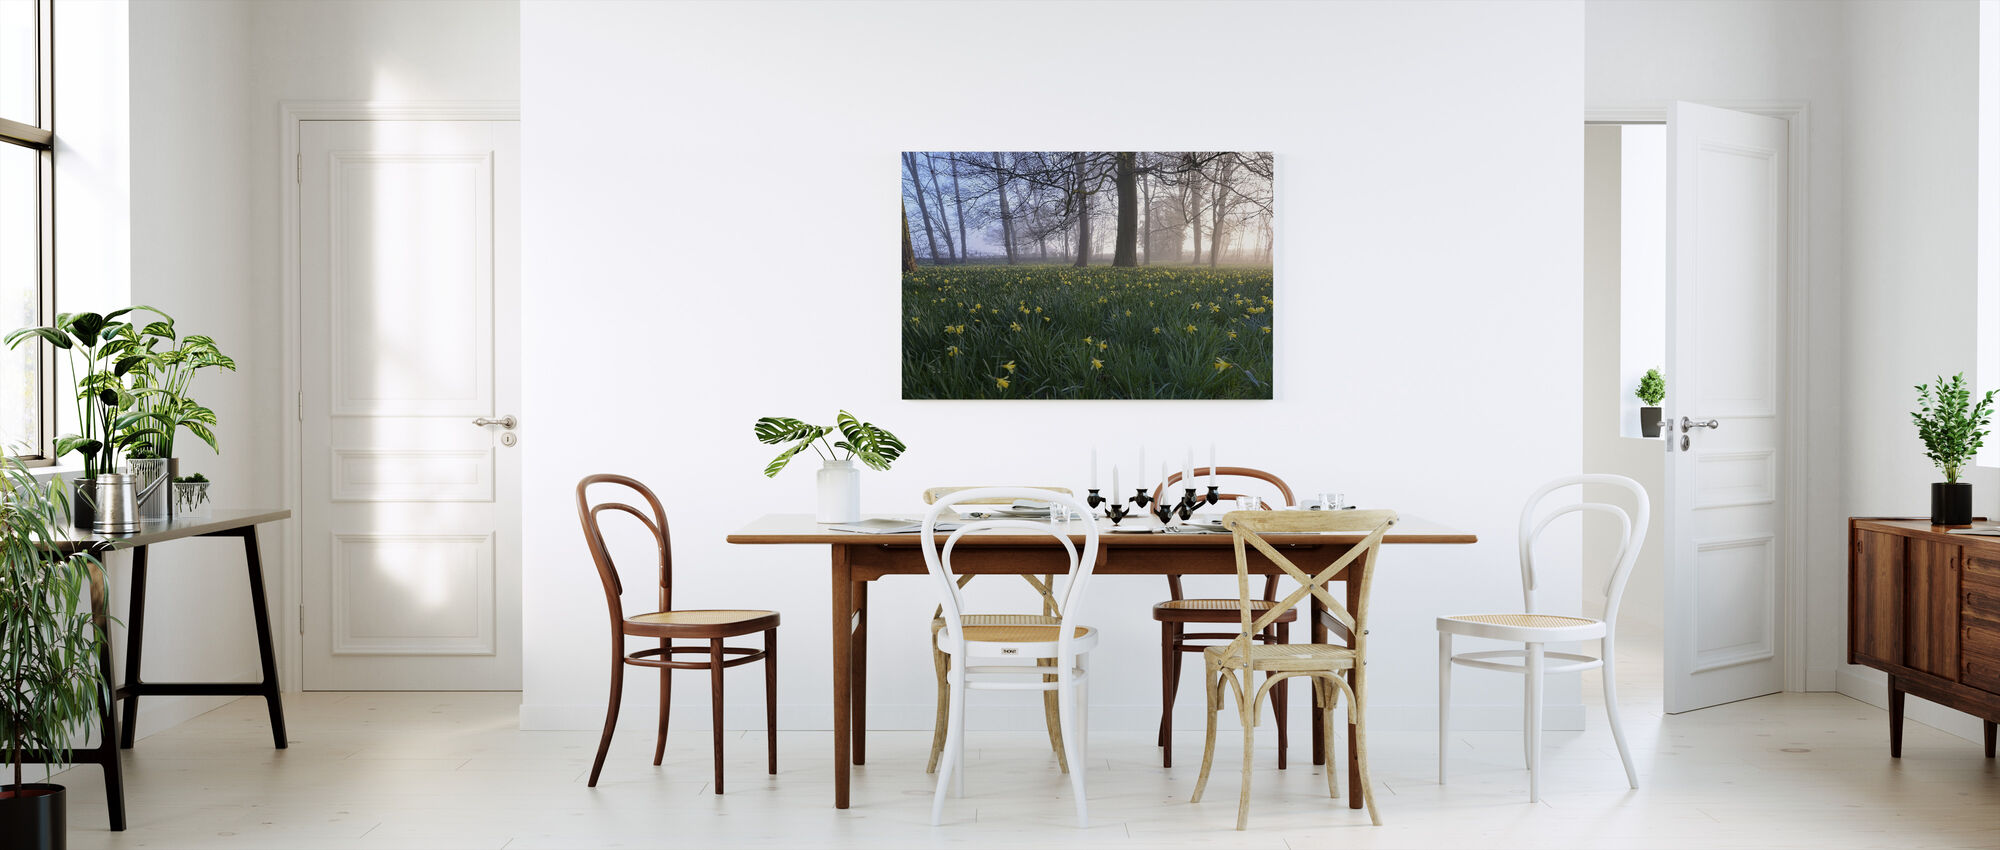 Daffodils in Early Morning - Canvas print - Kitchen